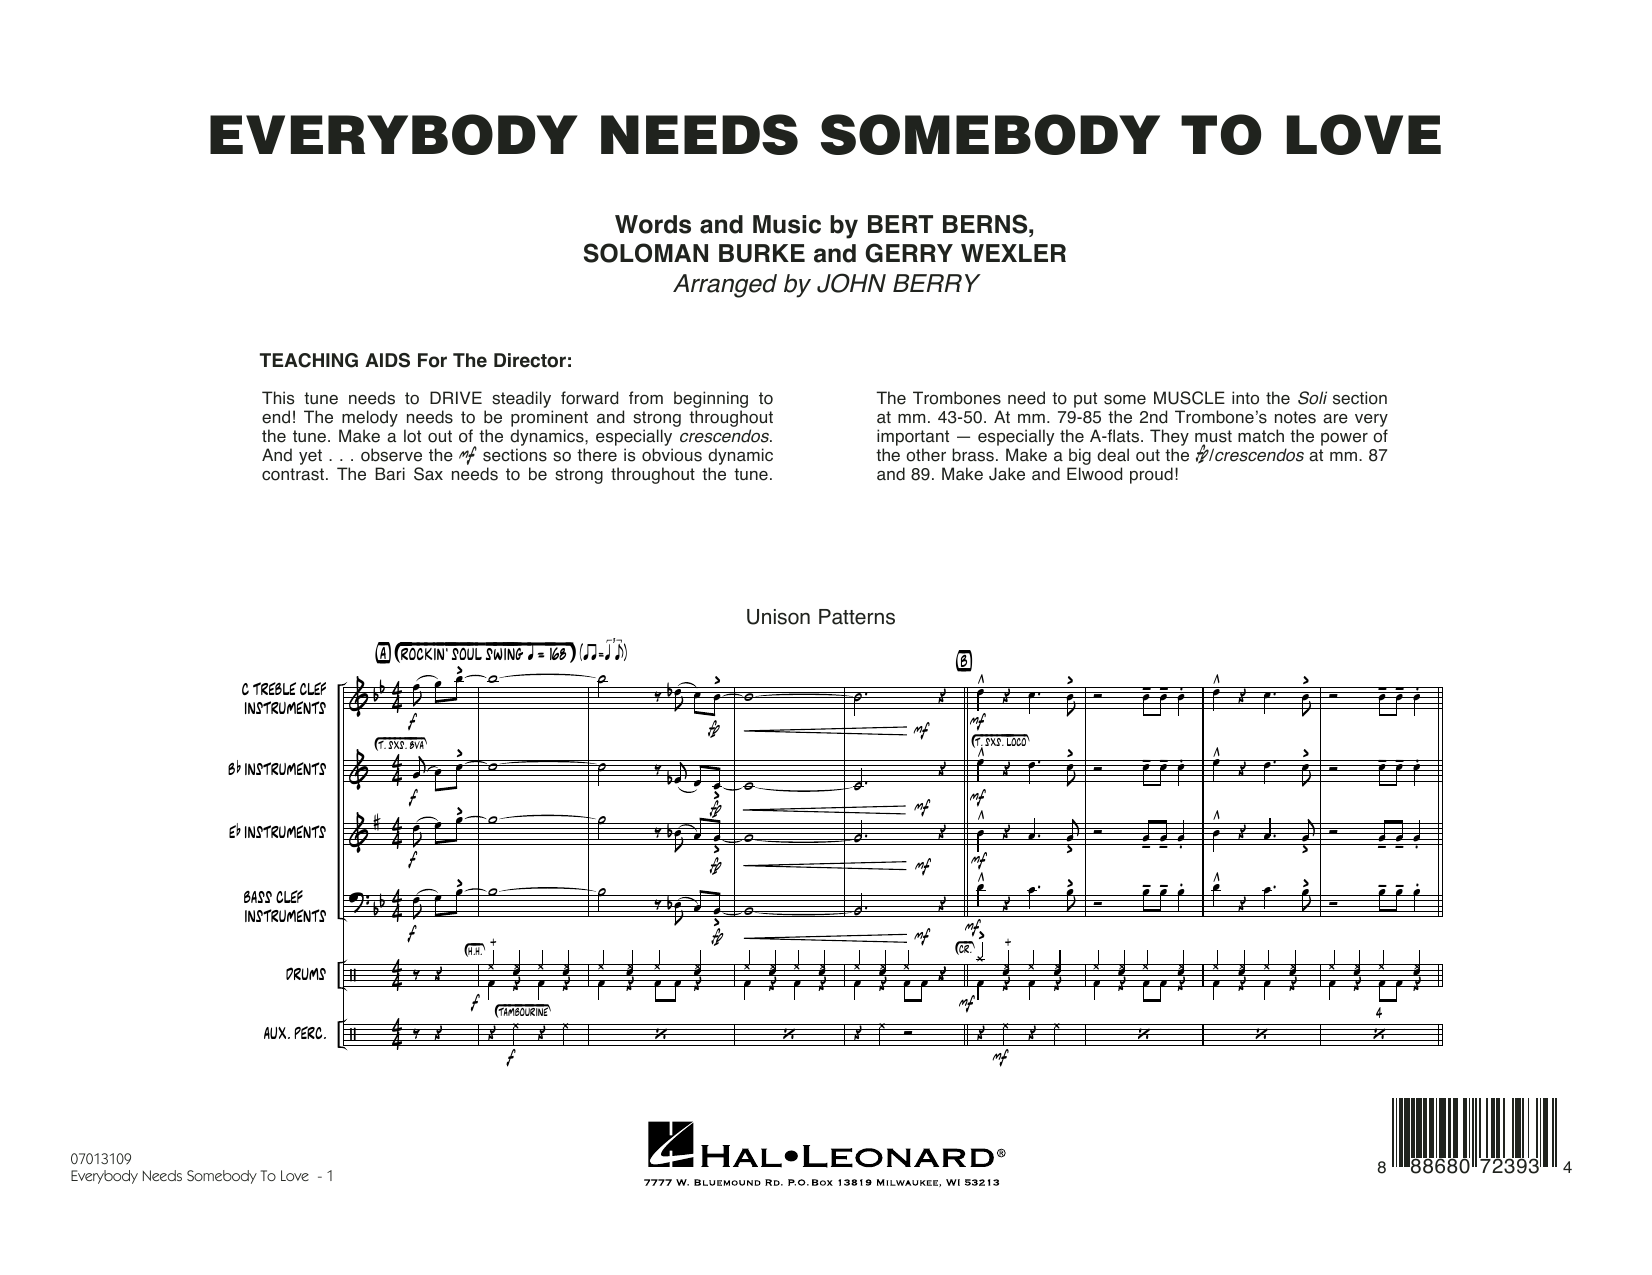 Everybody Needs Somebody to Love - Conductor Score (Full Score) Partituras Digitales